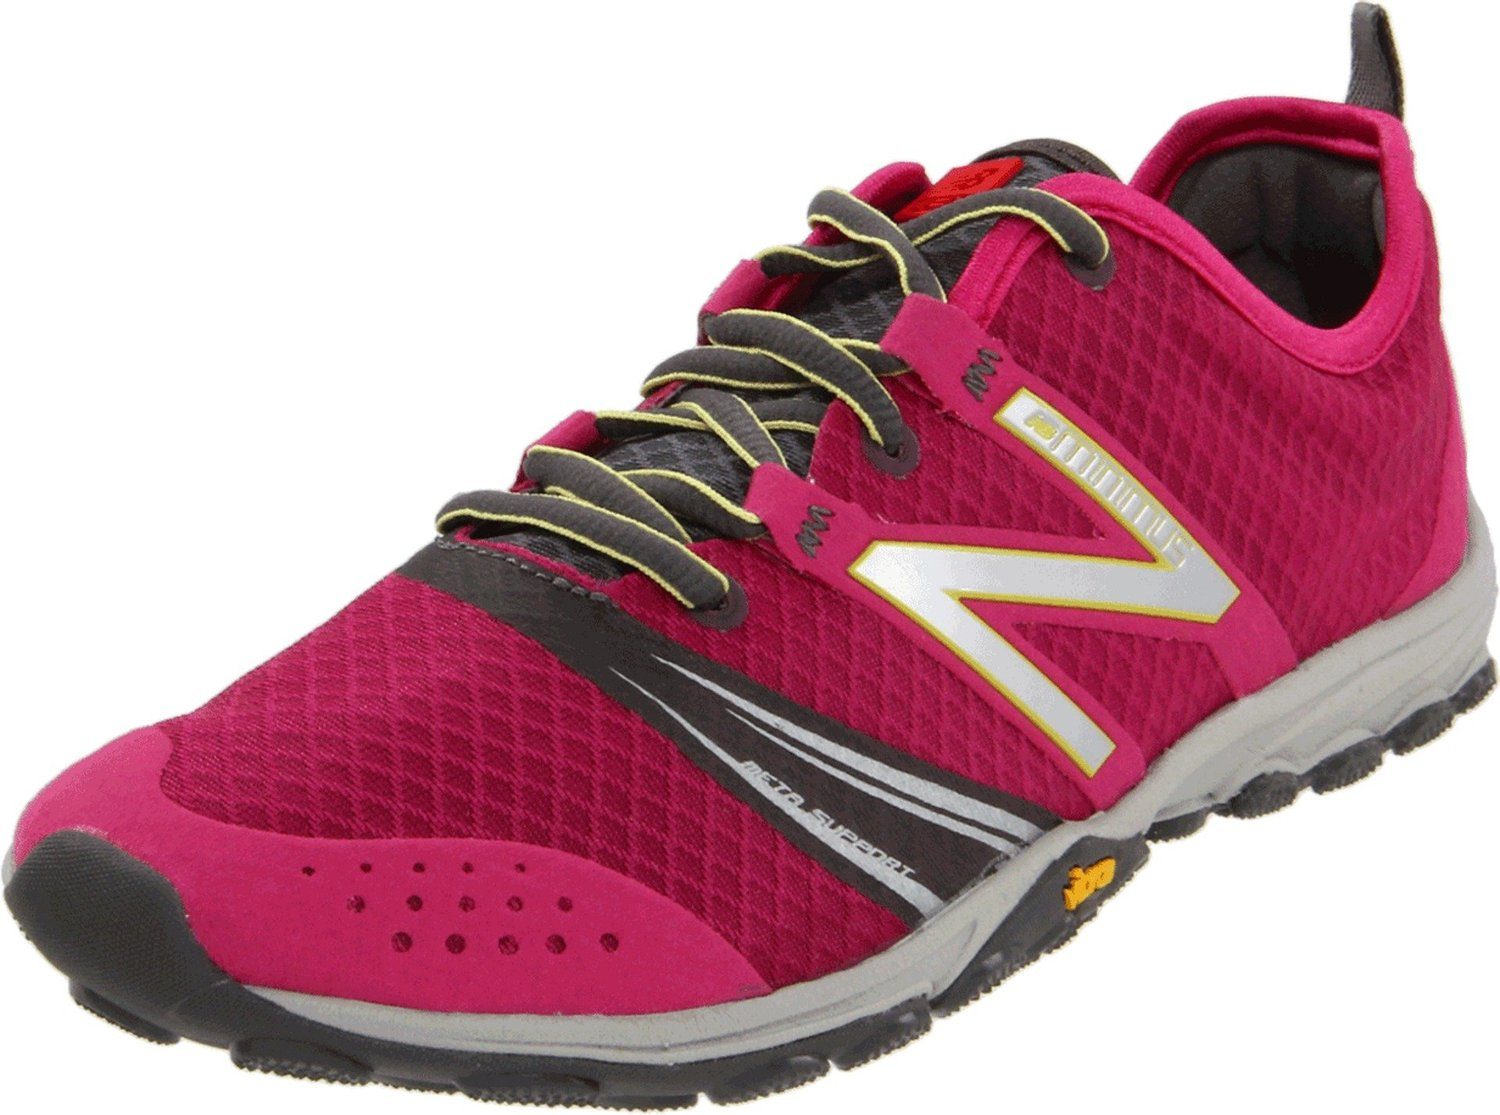 Dec 01,  · Shop the official New Balance site for top-of-the-line footwear for all of your sports and outdoors needs. New Balance offers men's, women's and children's athletic shoes, apparel and accessories direct from the source.